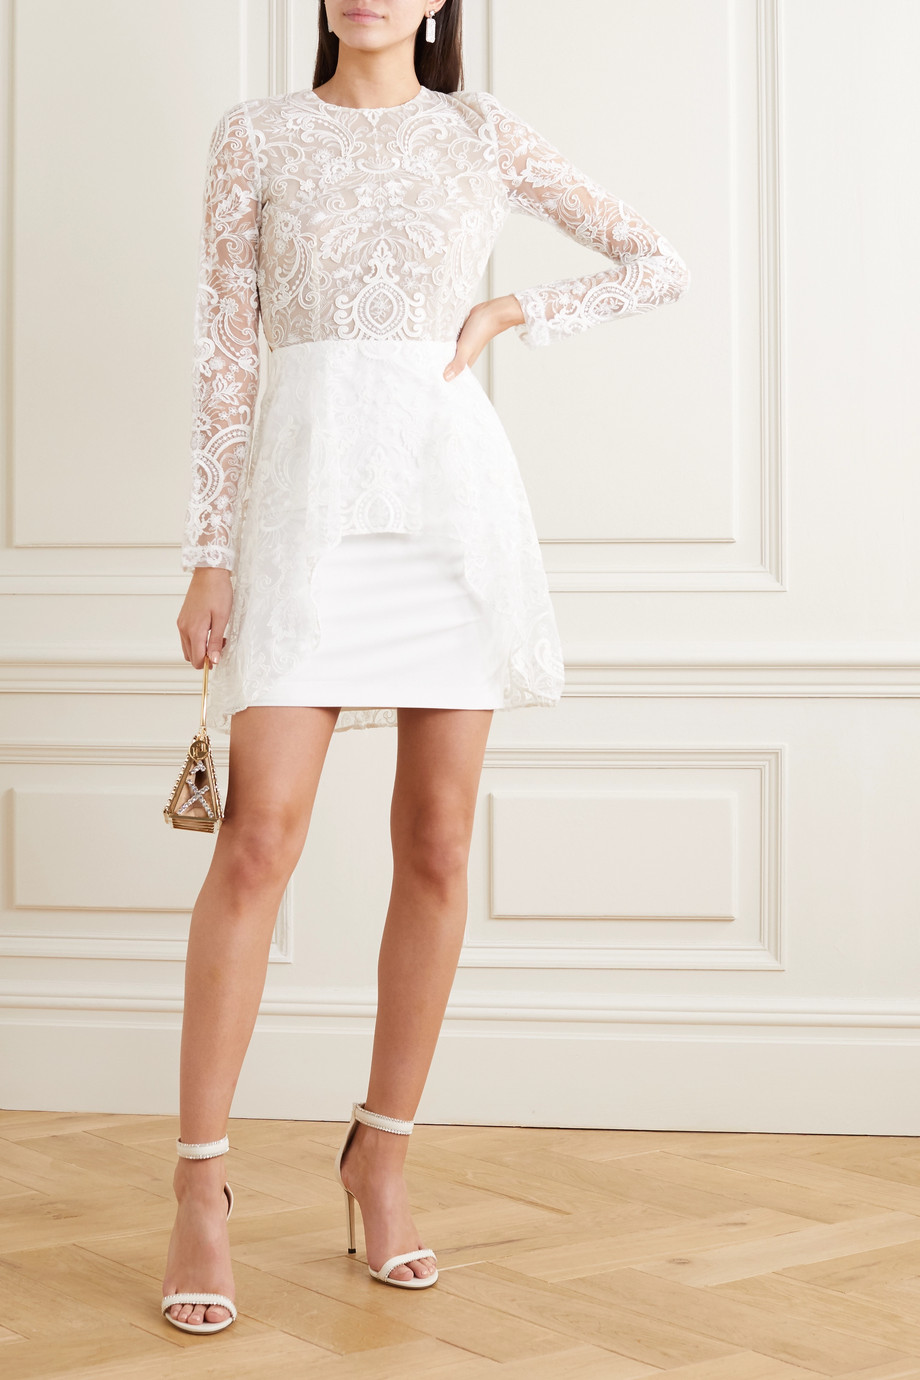 Rime Arodaky Sansa open-back lace and crepe mini dress